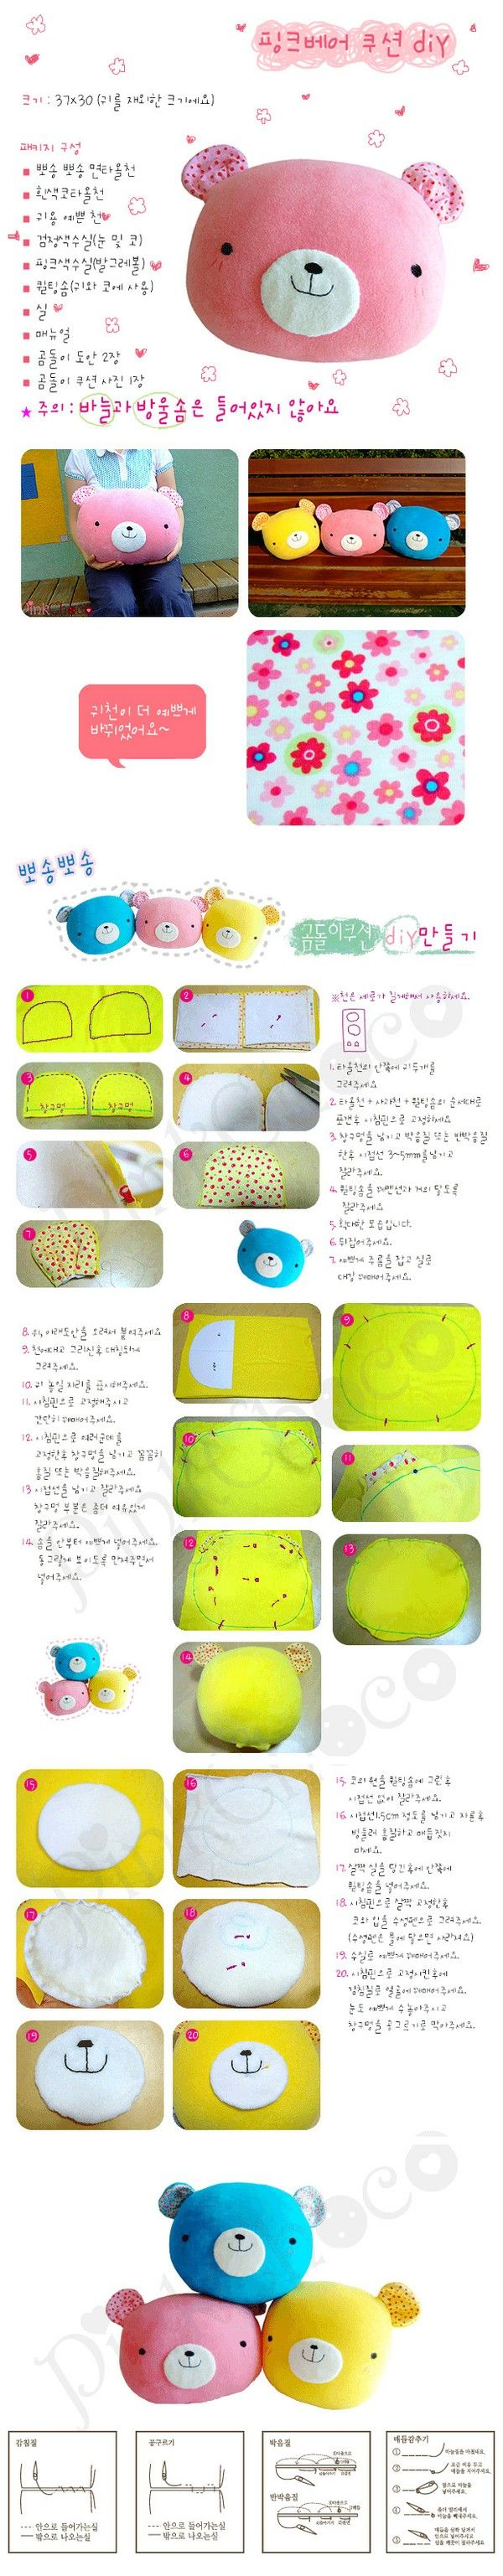 可爱韩国大抱枕熊 有教程, Cute Critter Pillow, Cushion , How to Make a Toy Animal Plushie Tutorial Plushies Tutorial , Animal Plushies, Softies & Furries Arts and Crafts, Diy Projects, Sewing Template , animals, plush, soft, toy, pattern, template, sewing, diy , crafts, kawaii, cute, sew, pattern, critter bear